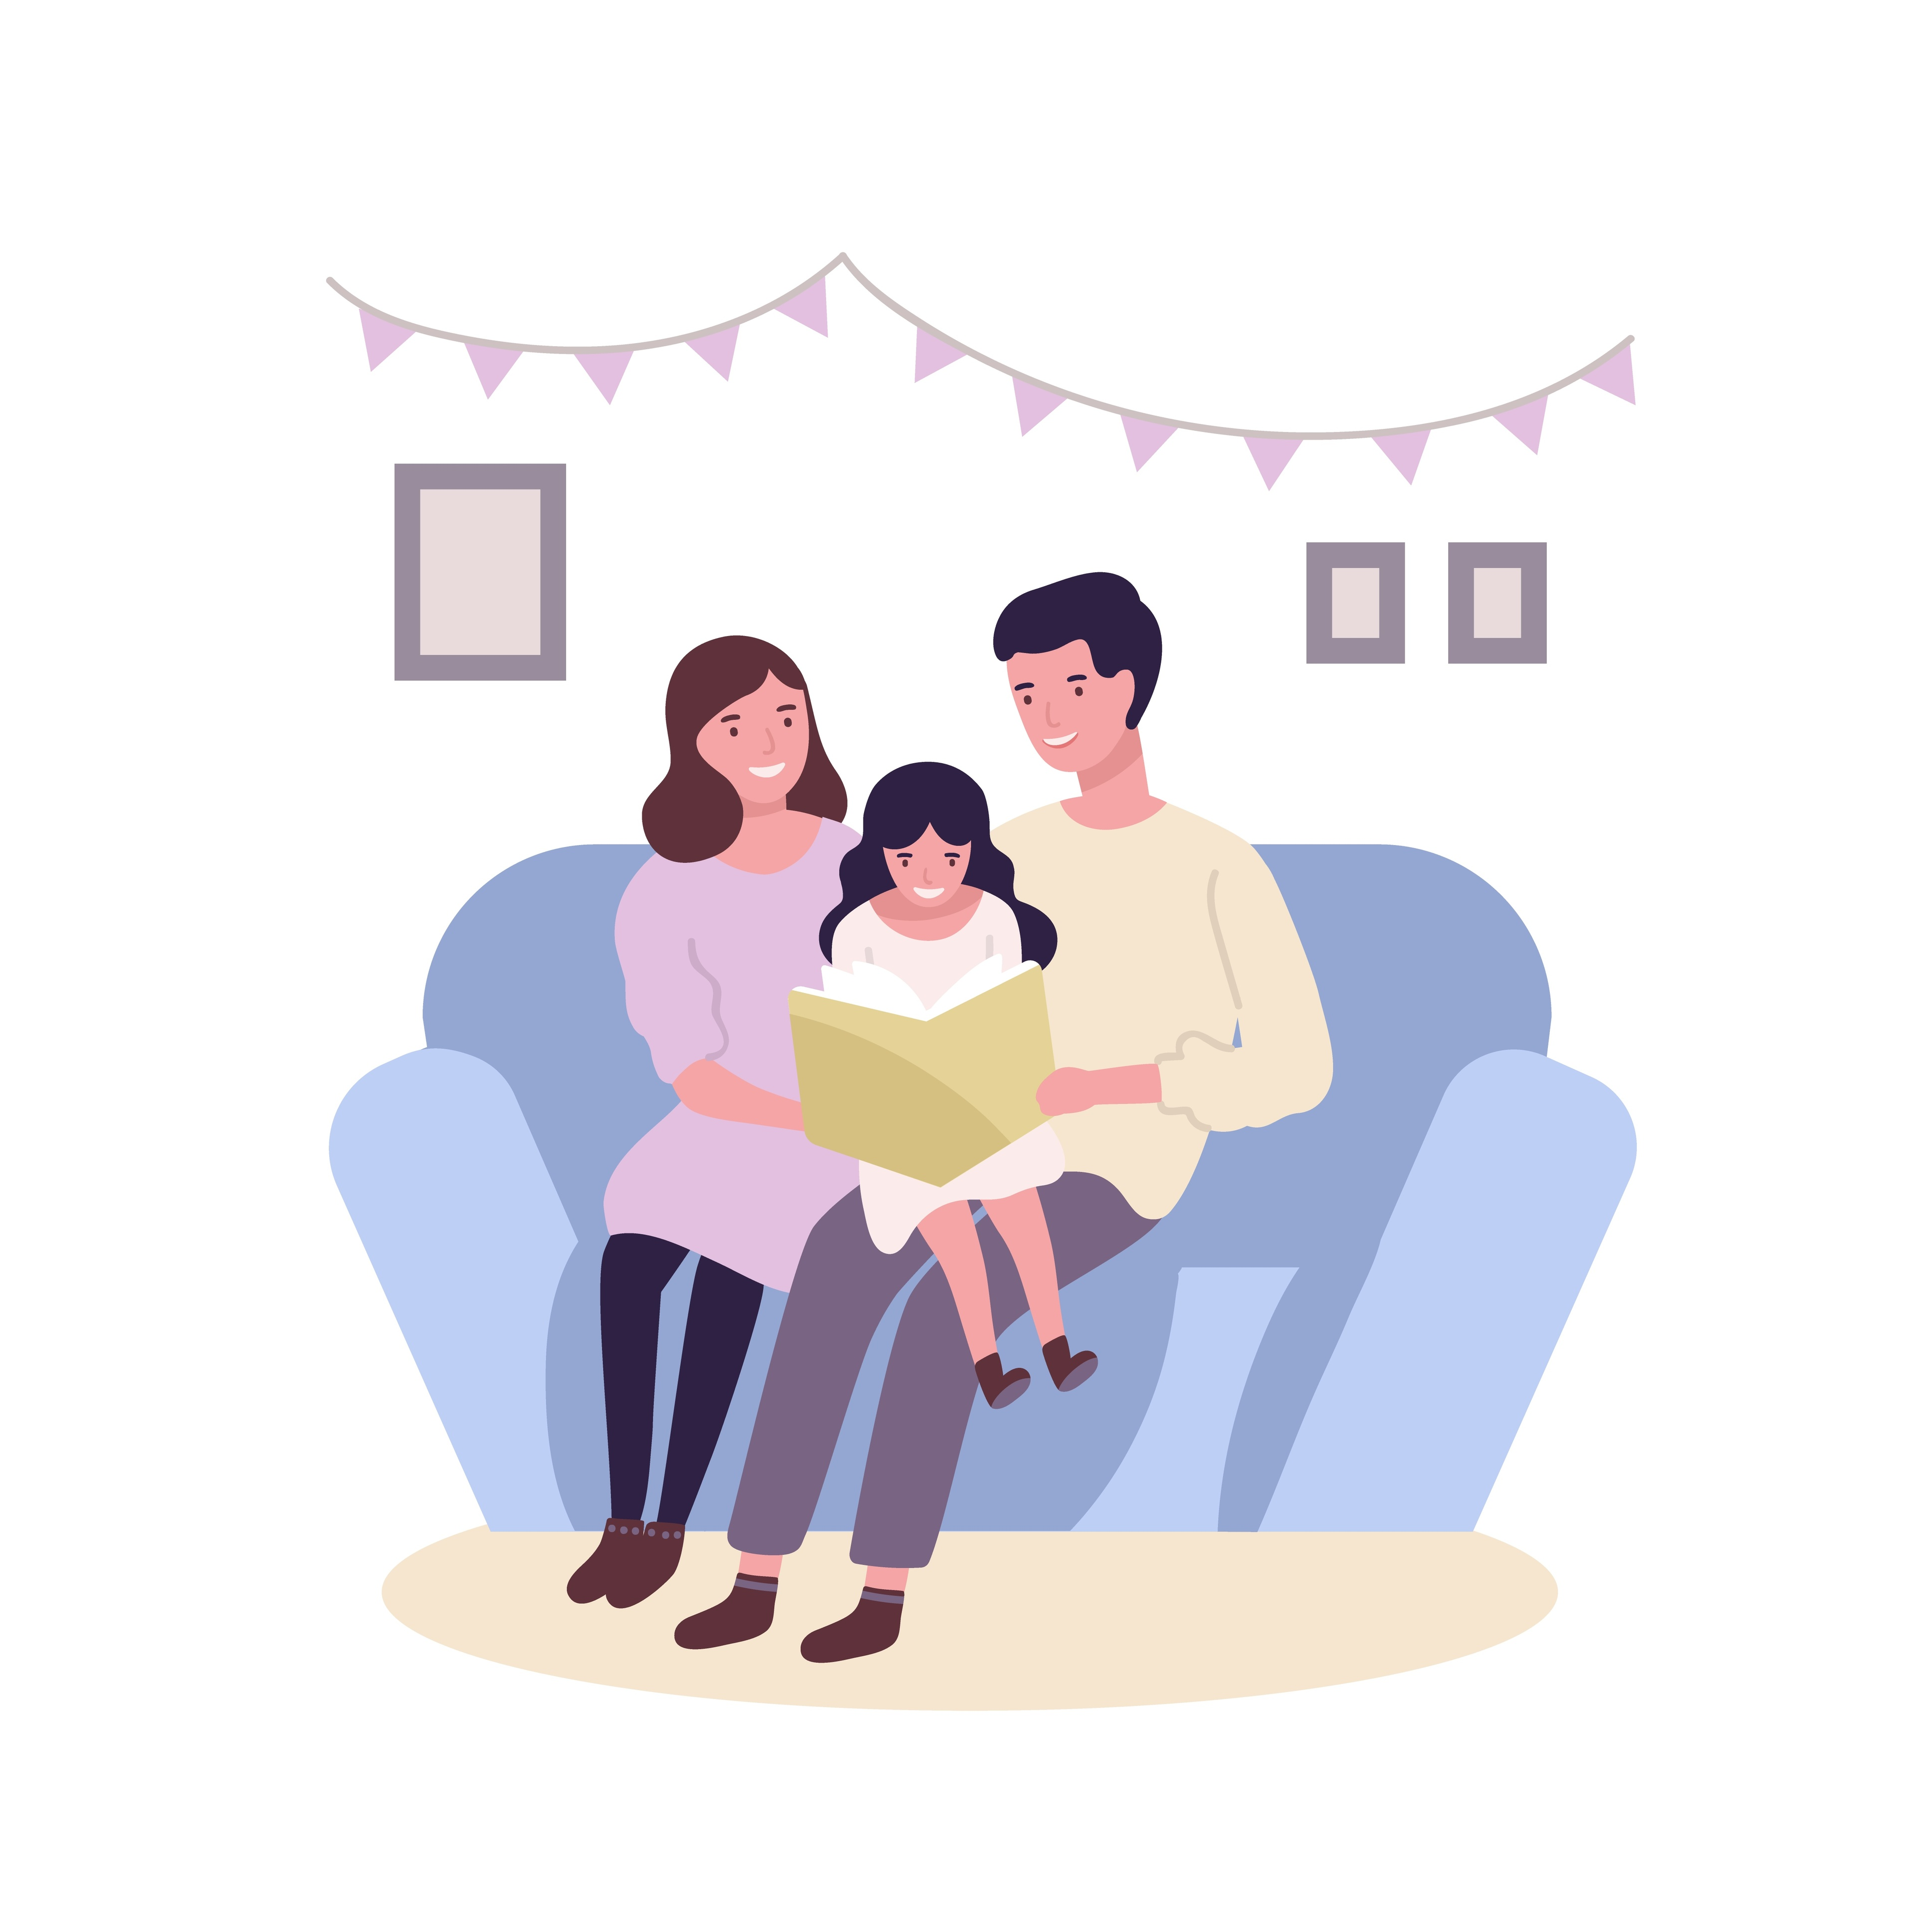 Illustration of two parents sitting on a couch and reading to their child.